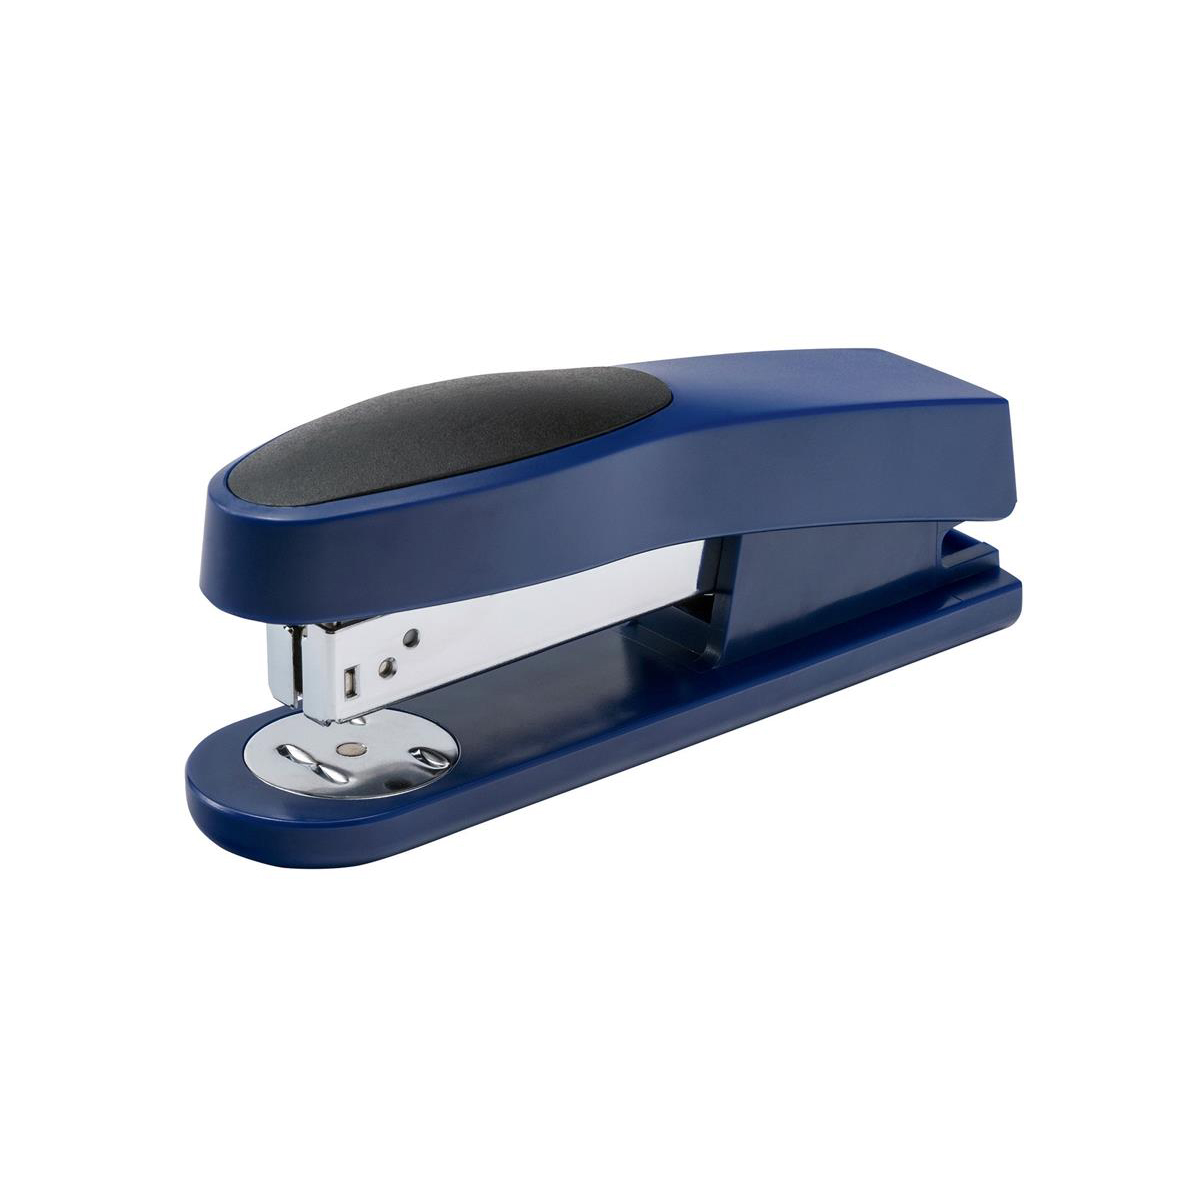 5 Star Office Half Strip Stapler Top Loading Rubber Base 25 Sheet Capacity Takes 26/6 Staples Blue